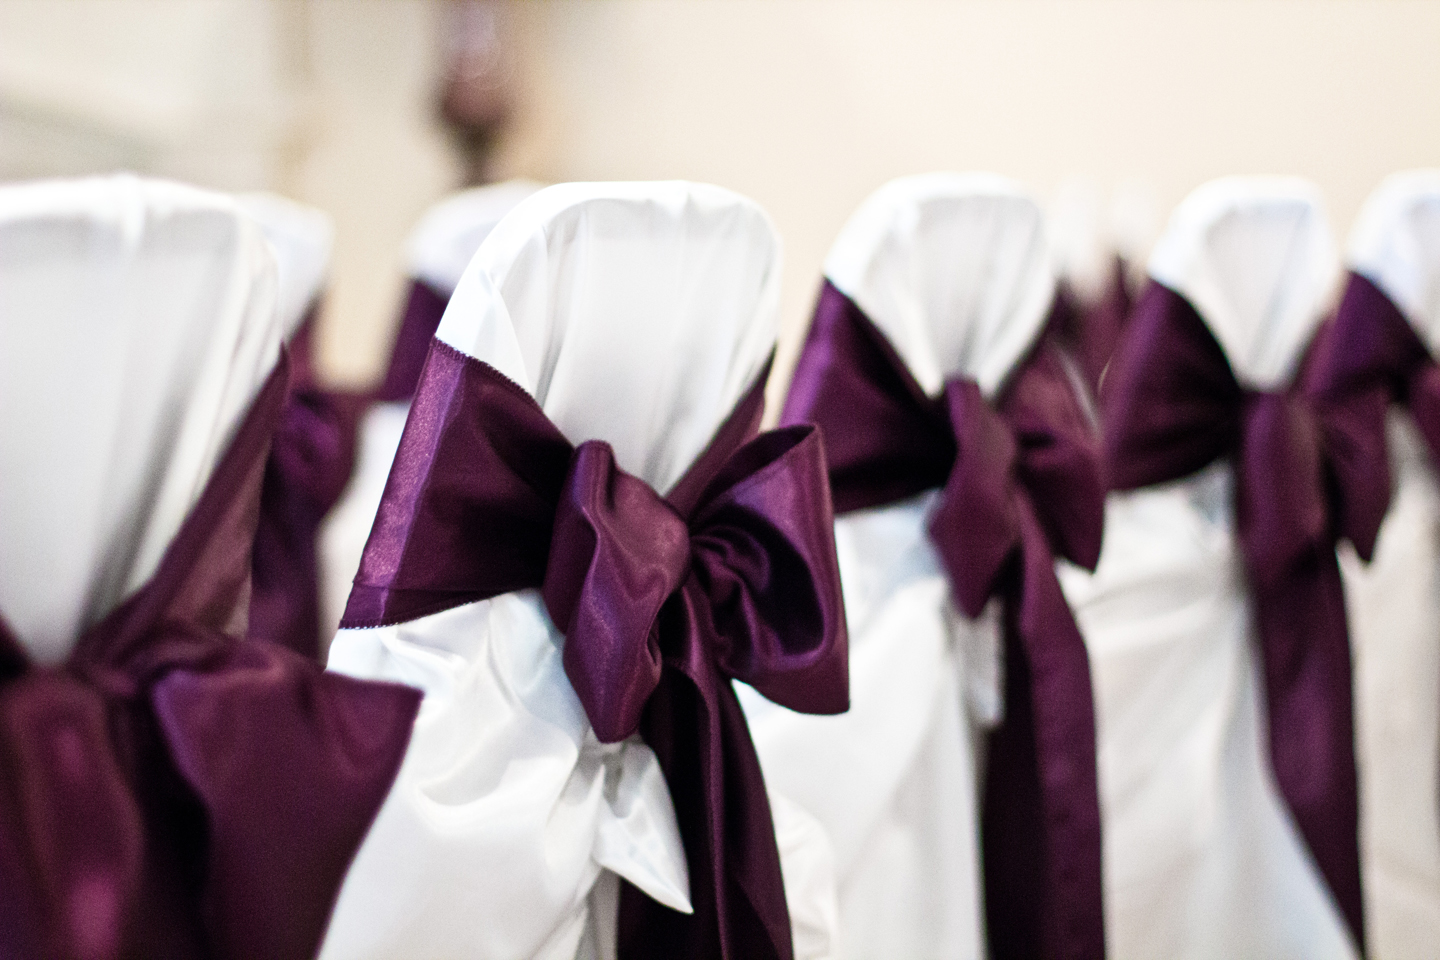 Published December 12 2012 at 1440 × 960 in ... & Eggplant-coloured bows on chairs at a reception | The Merry Bride